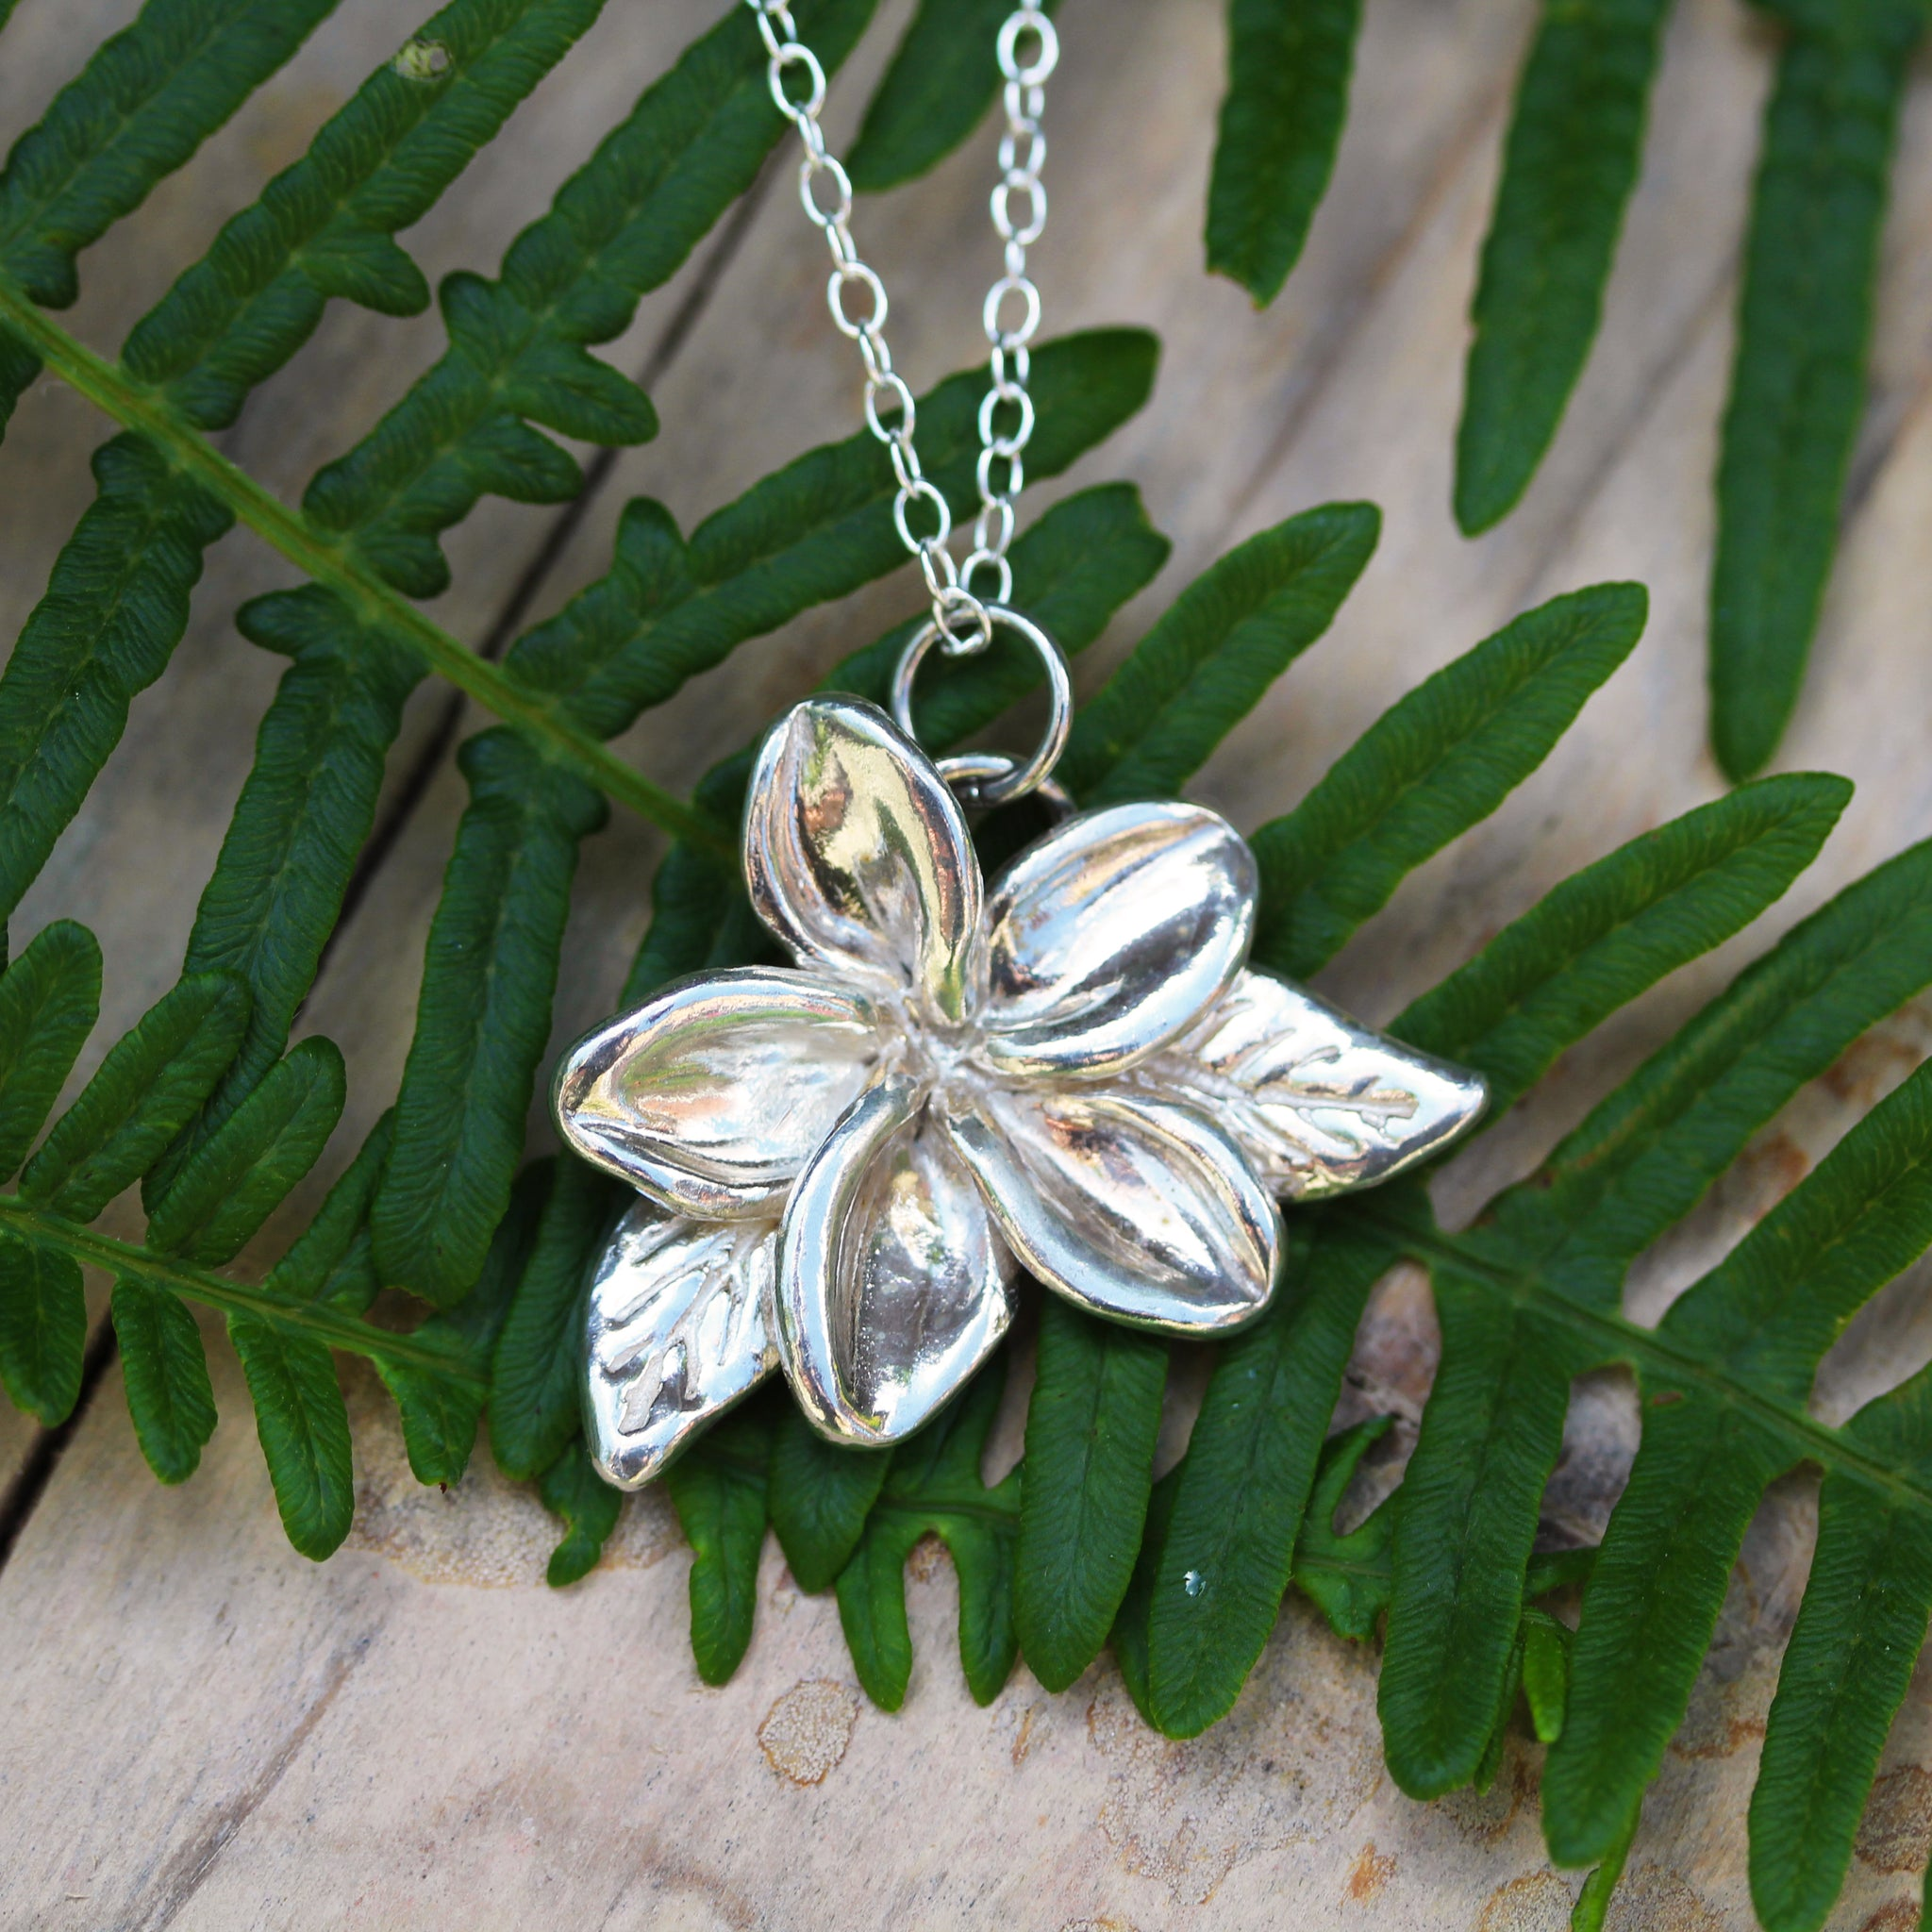 Single Plumeria flower necklace, handmade in 100% recycled sterling silver, by Gemma Tremayne Jewellery